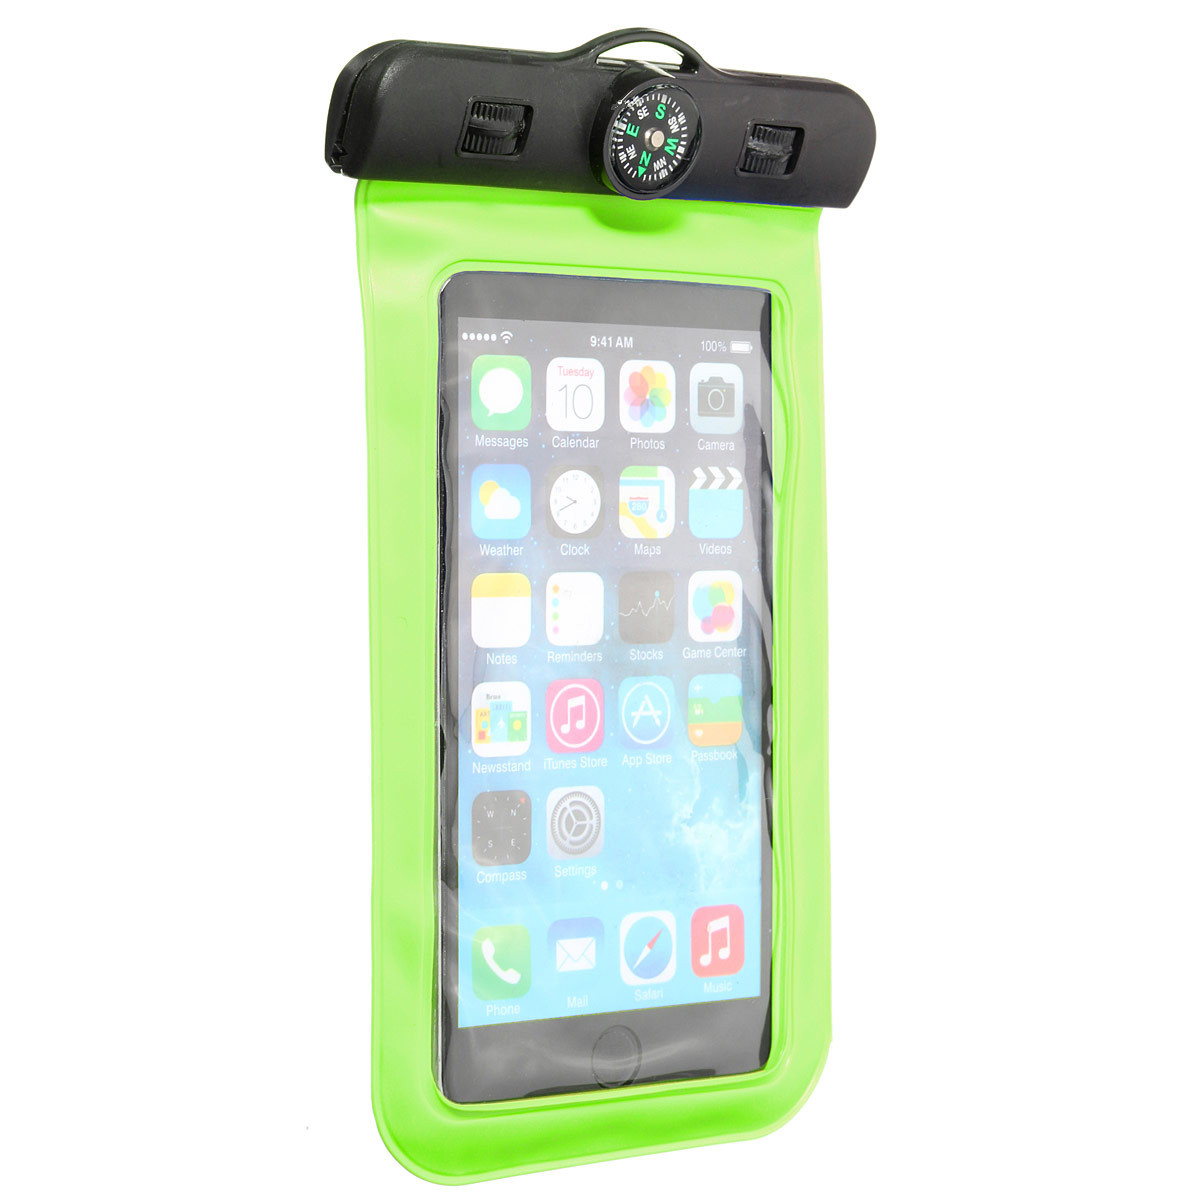 Universal Waterproof Dive Dry Bag Cover Case Pouch For 5.7' Mobile Phone